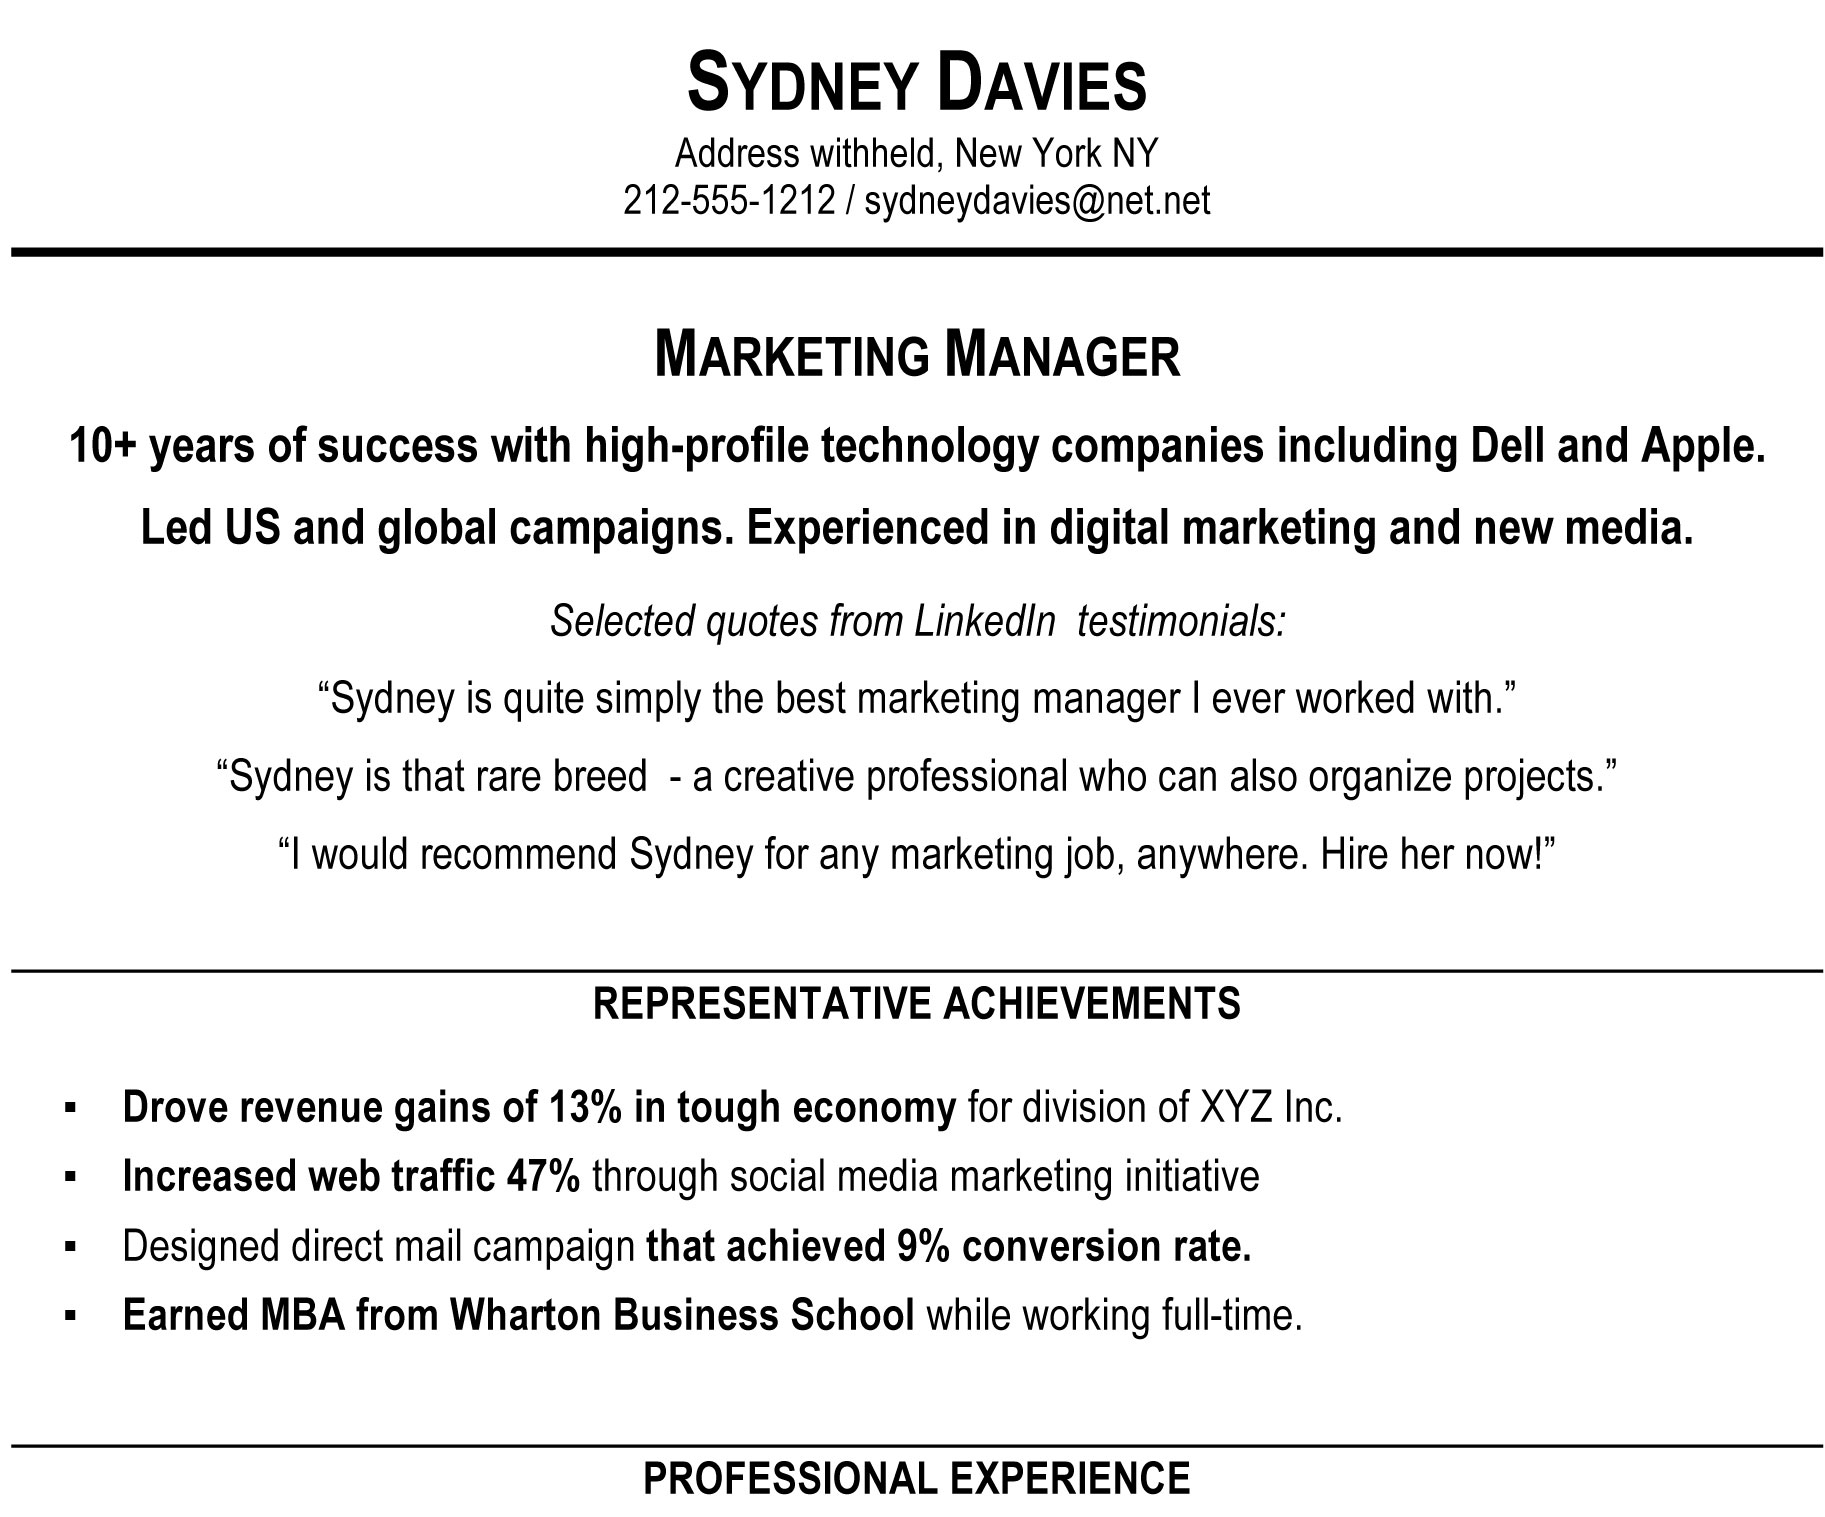 Resume Summary Examples How To Write A Resume Summary That Grabs Attention Blog Blue Sky